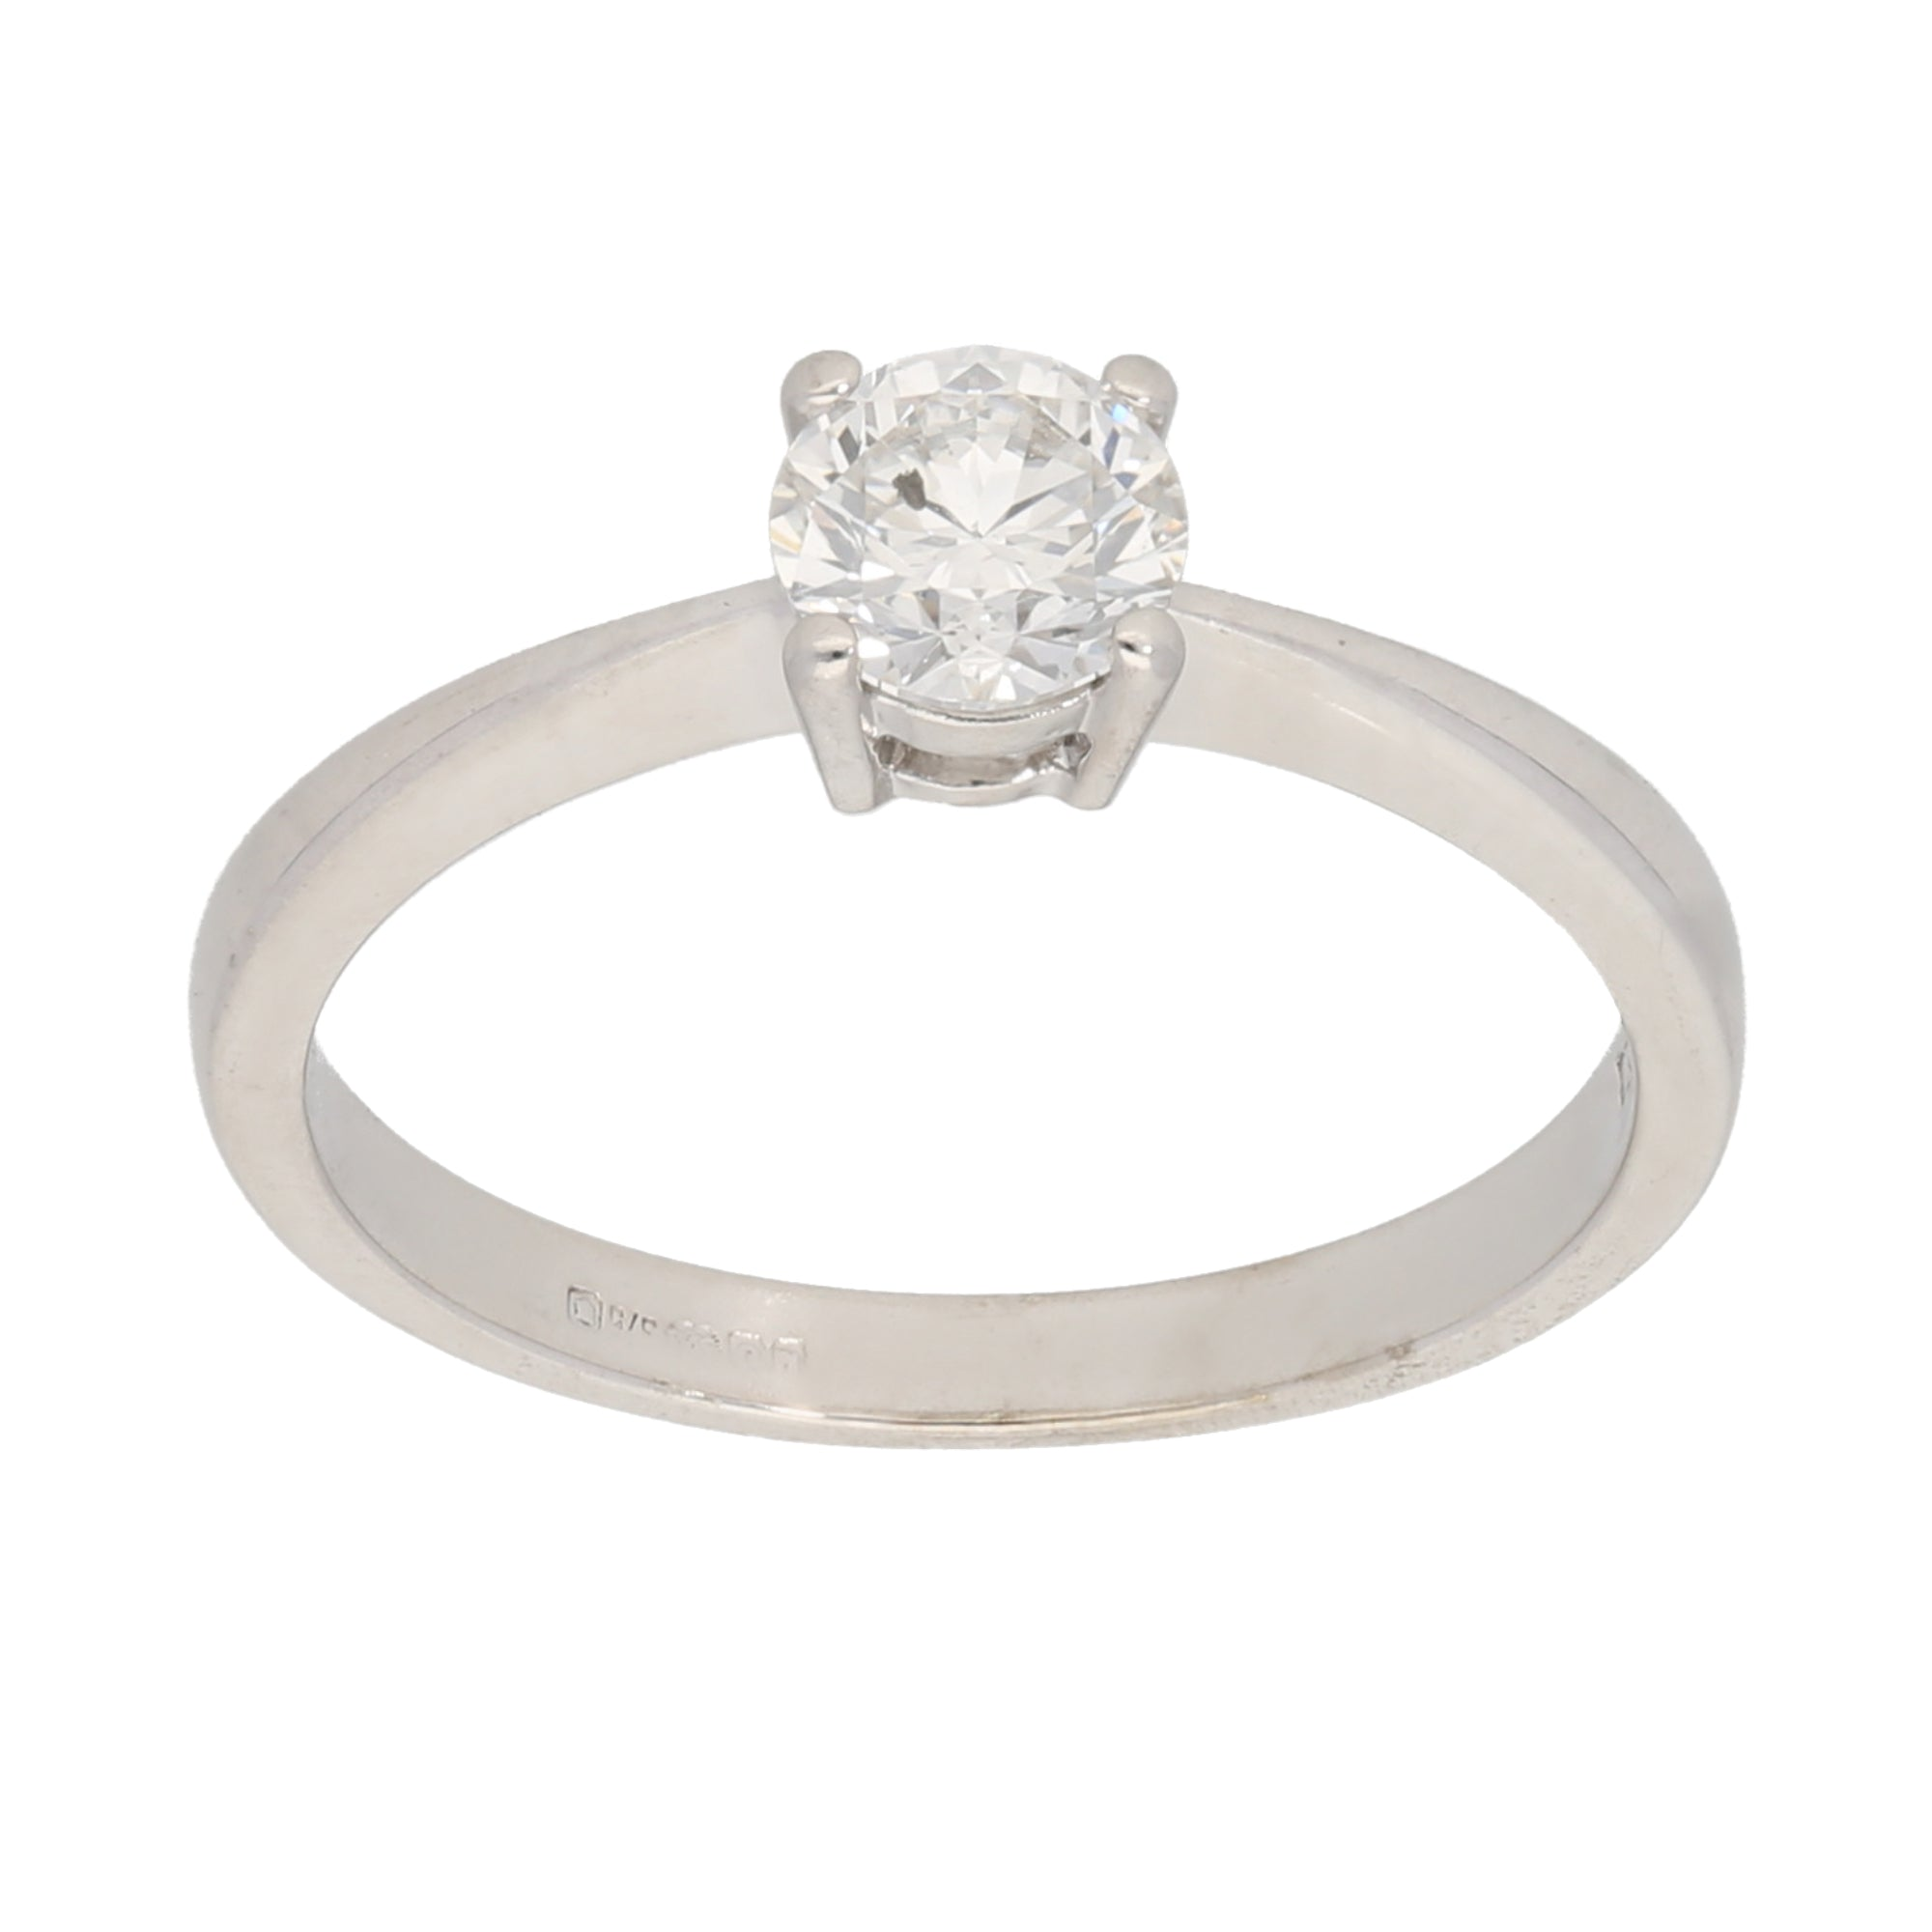 9ct Gold 0.50ct Round Cut Diamond Ladies Solitaire Ring Size M